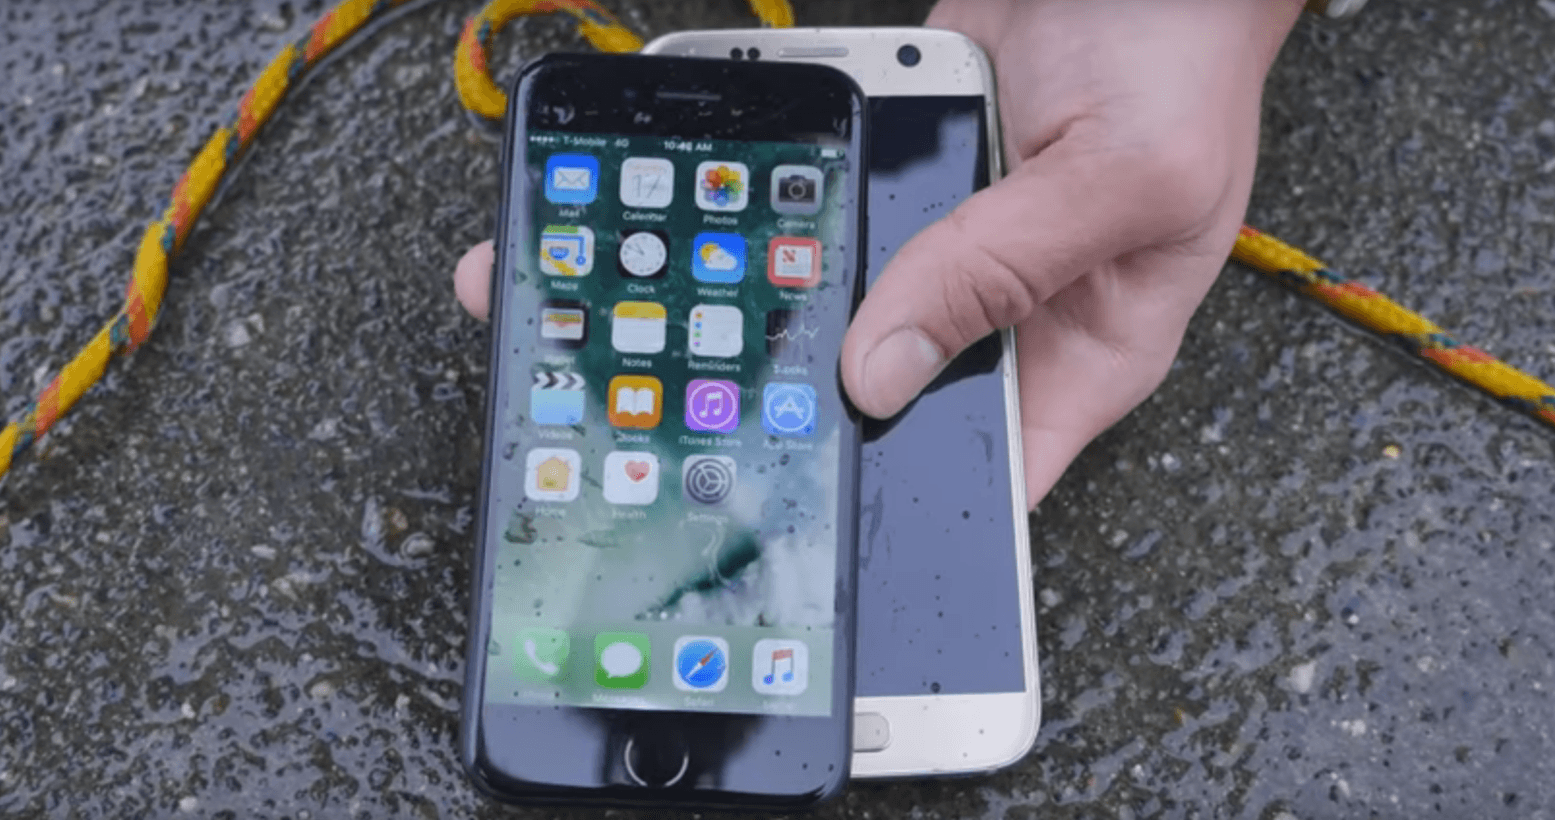 iphone water test iphone 7 has better waterproofing than samsung galaxy s7 12483